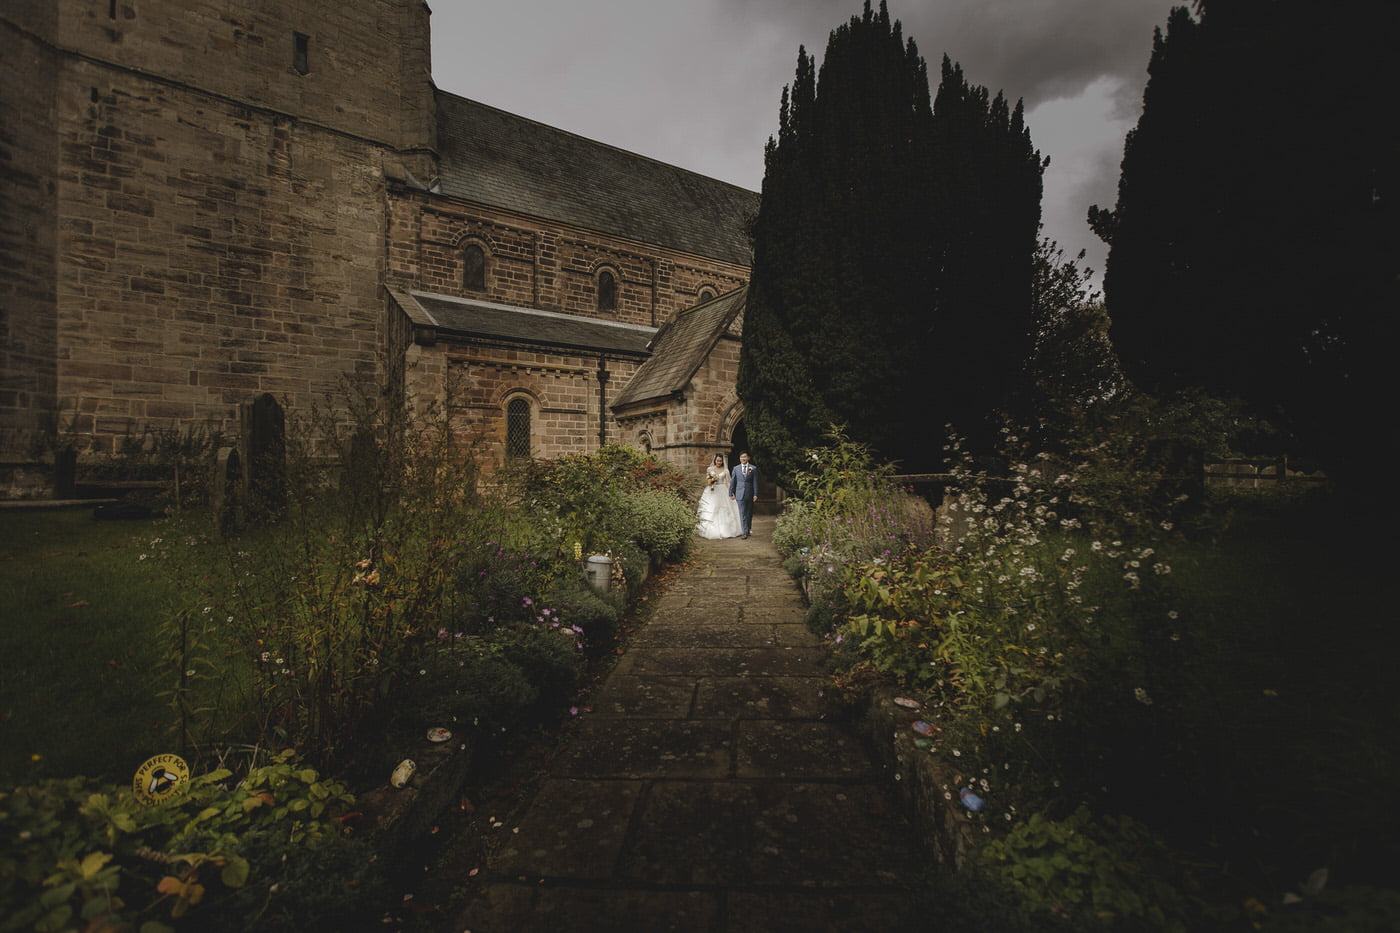 the bride and groom leave the church in Yorkshire with their wedding photographer